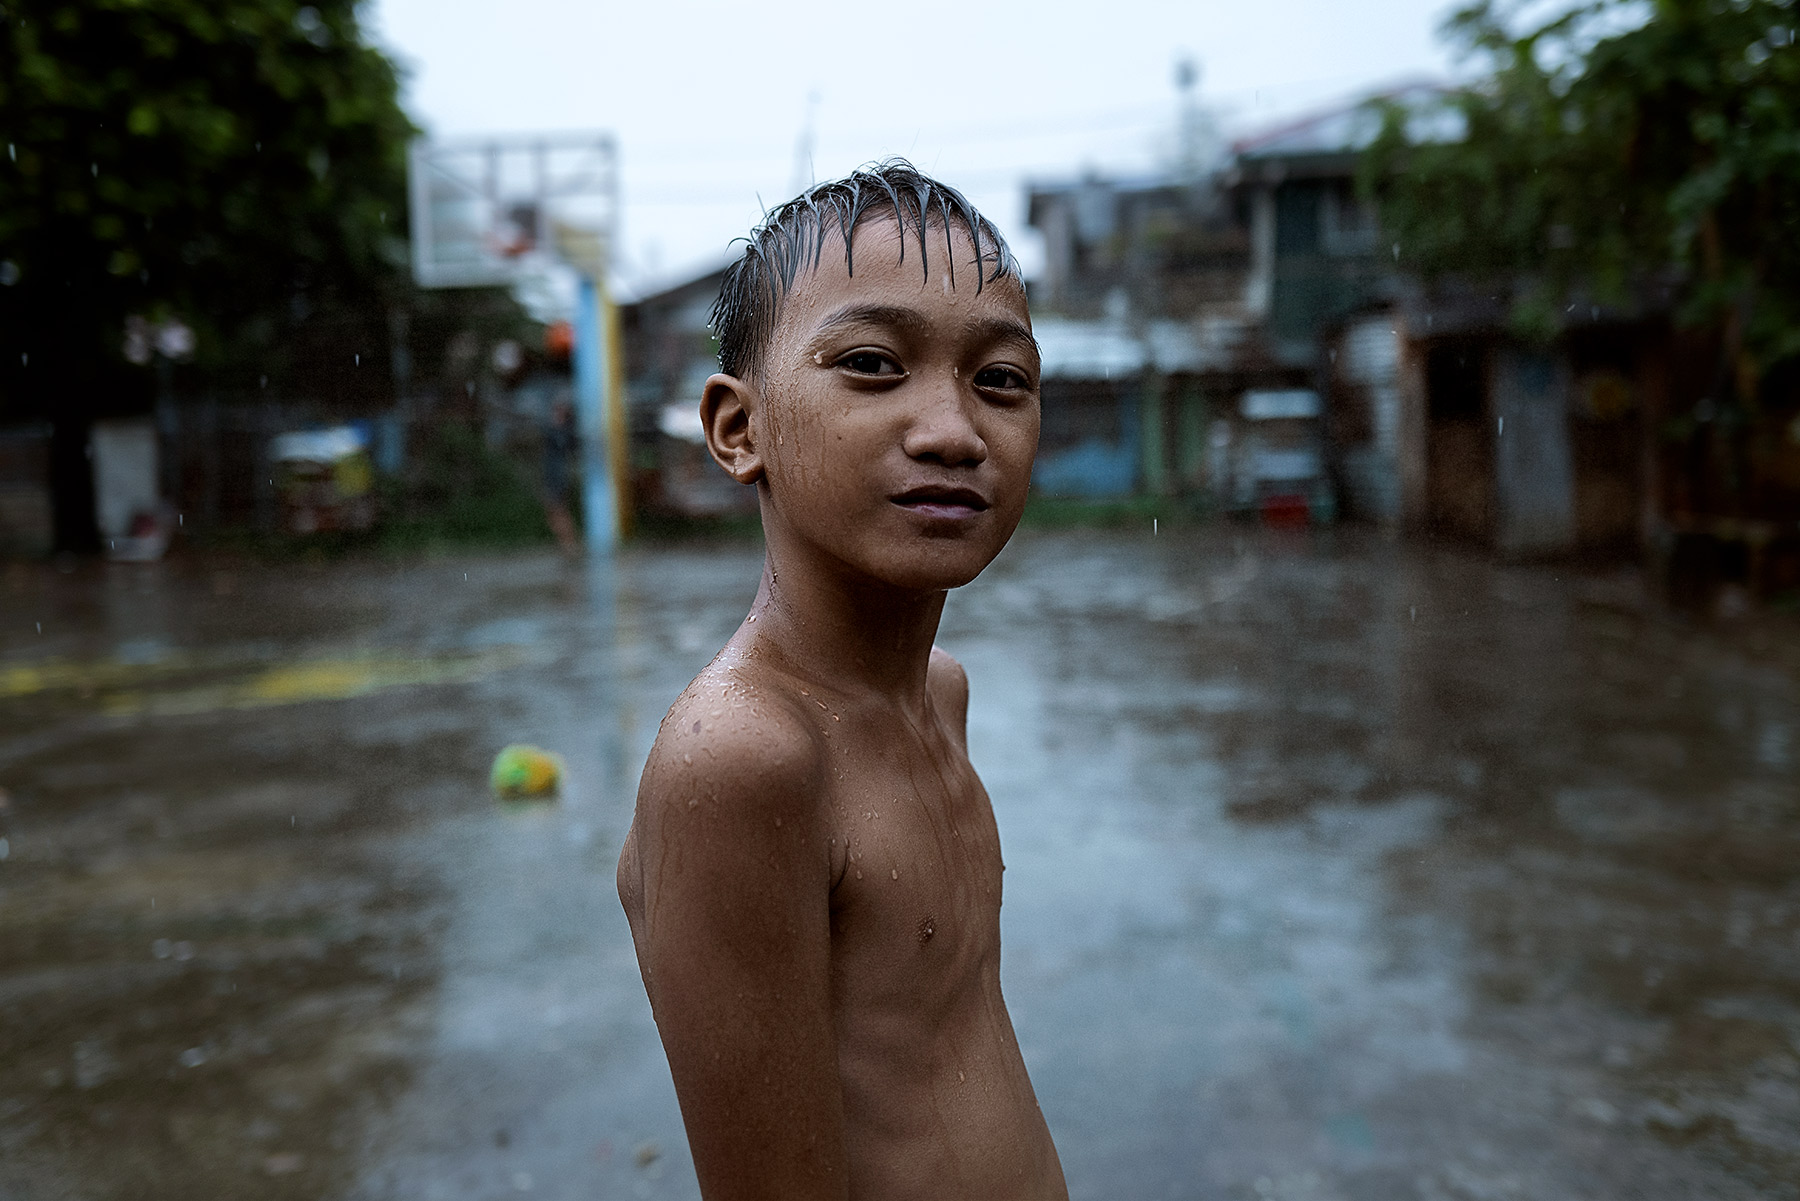 Good Boy Wolf Photographer, Philippines, Basket ball child, stood outside in the rain